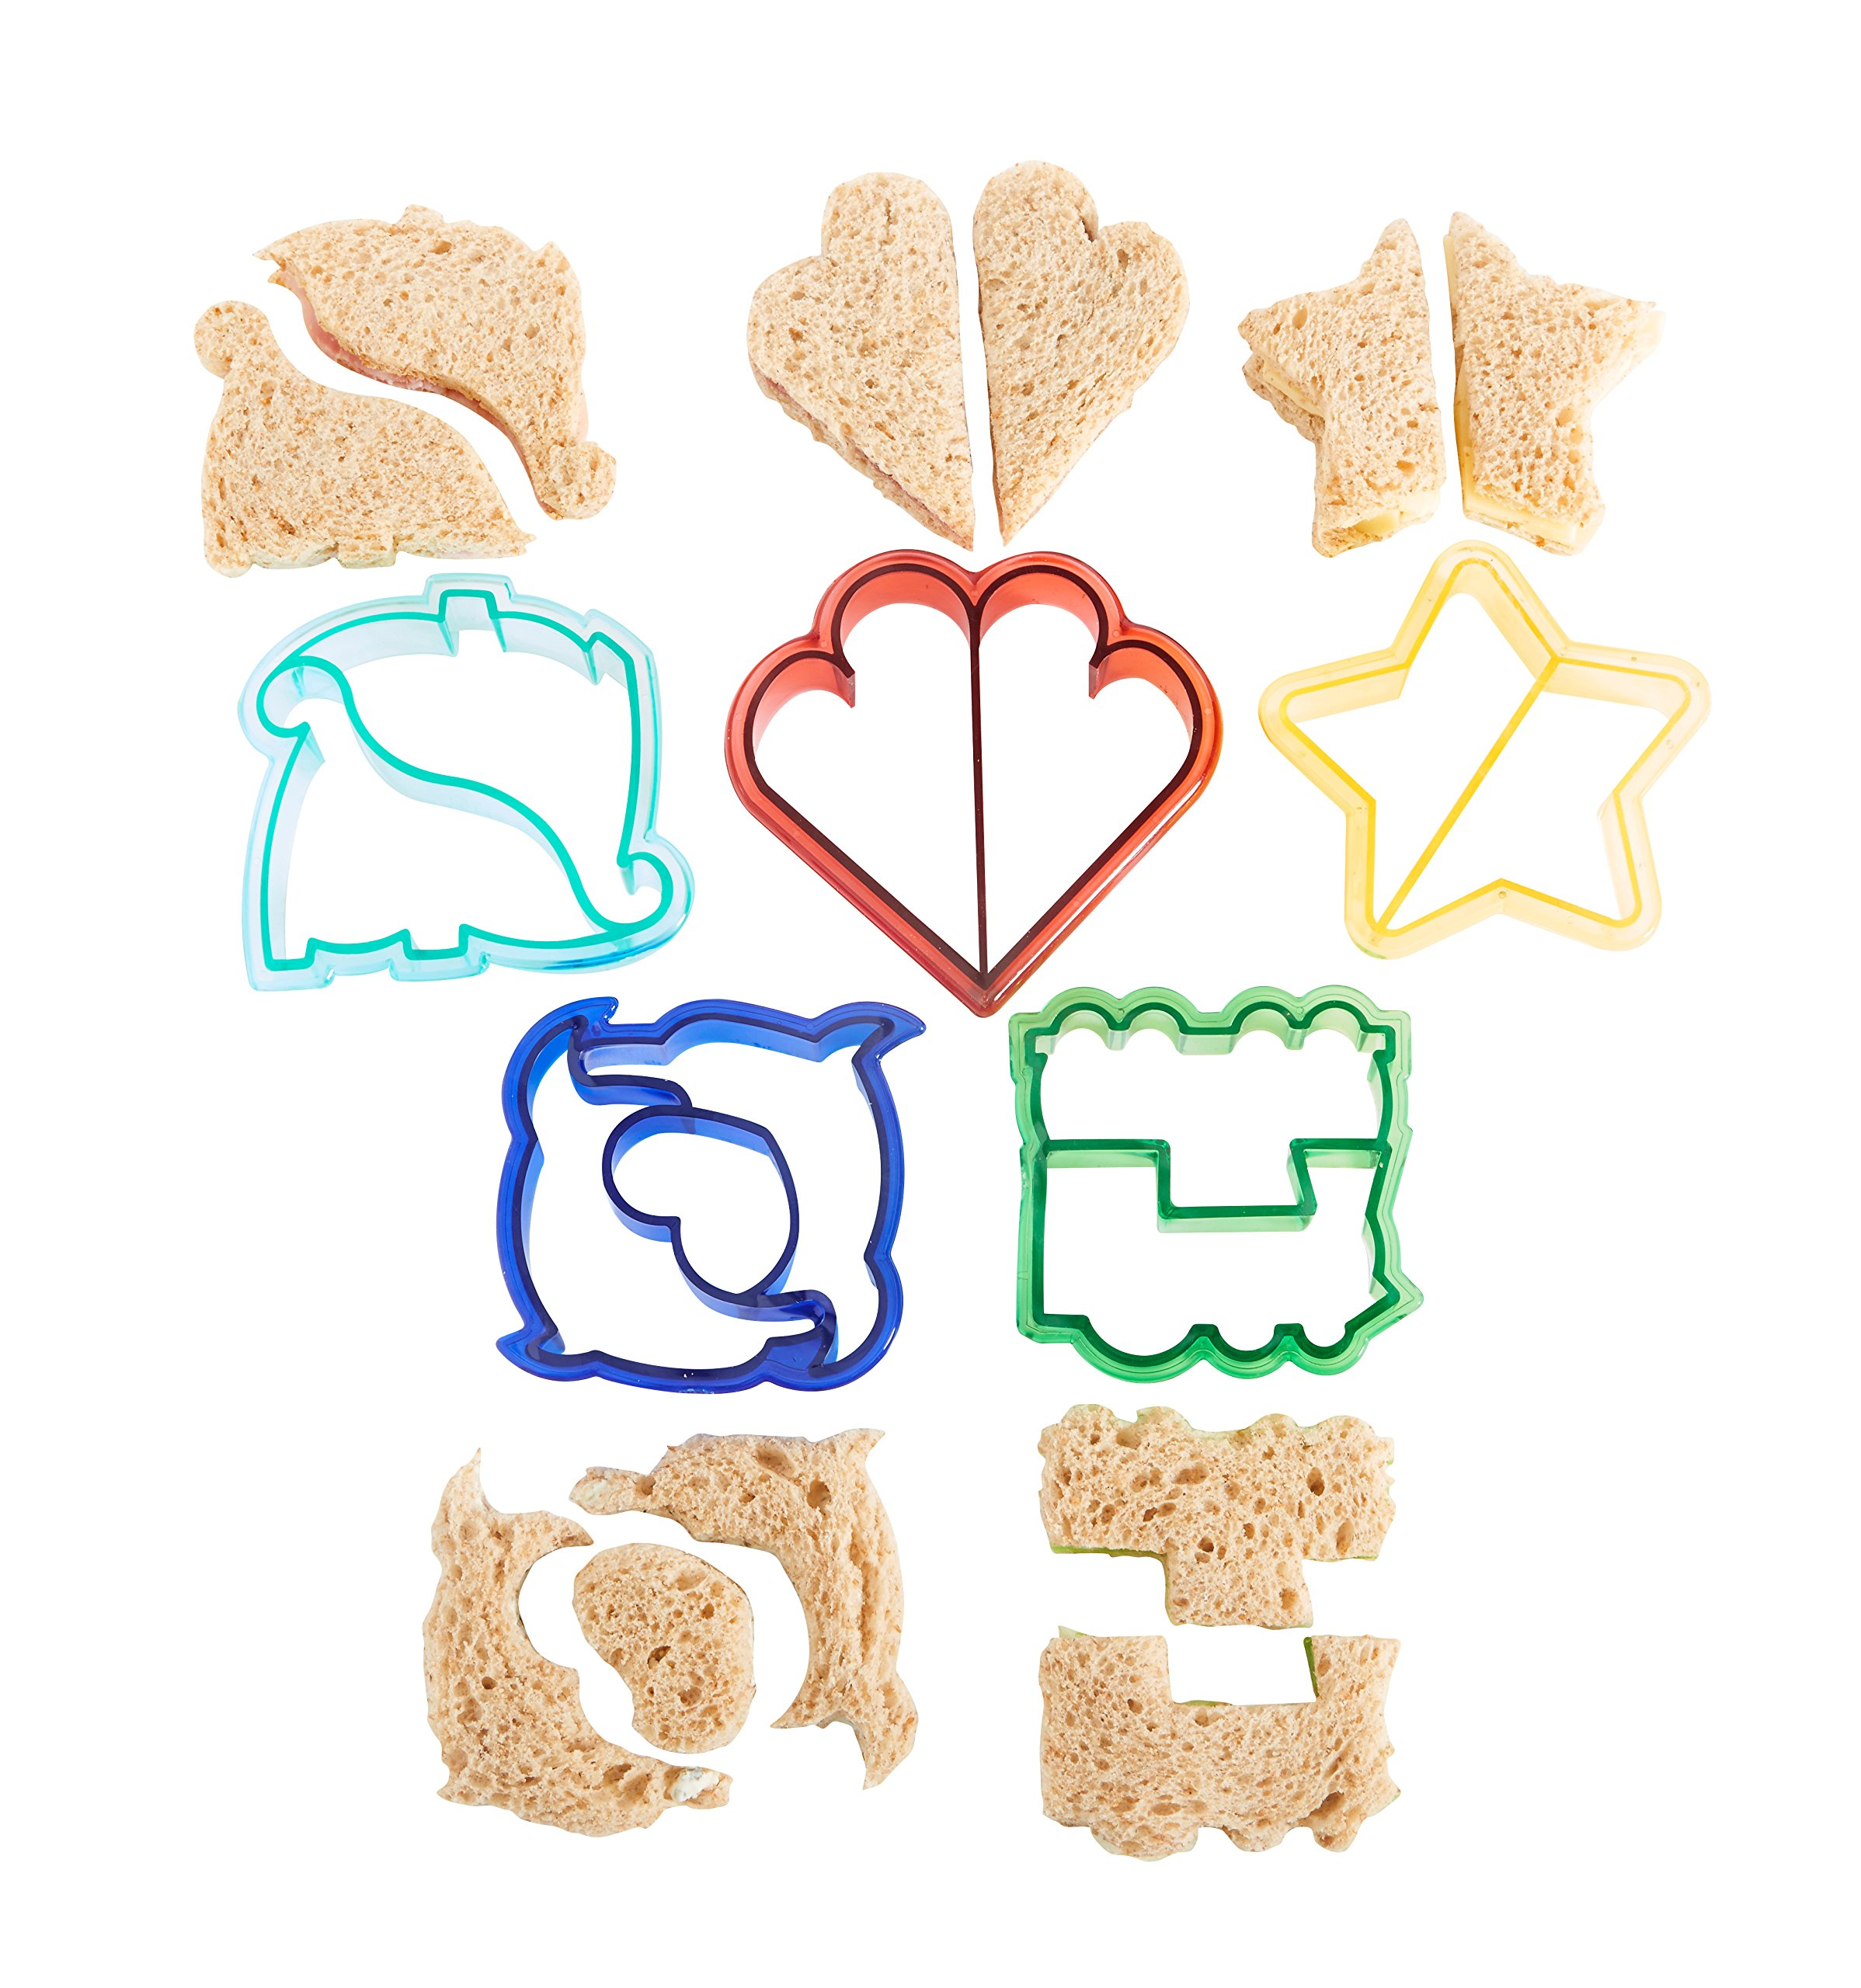 VonShef Fun Cookie Cake and Sandwich Cutter Shapes for Kids, Set of 5 Shapes Dinosaur, Dolphin, Heart, Star and Train, Multi Colored, 5pc by VonShef (Image #8)